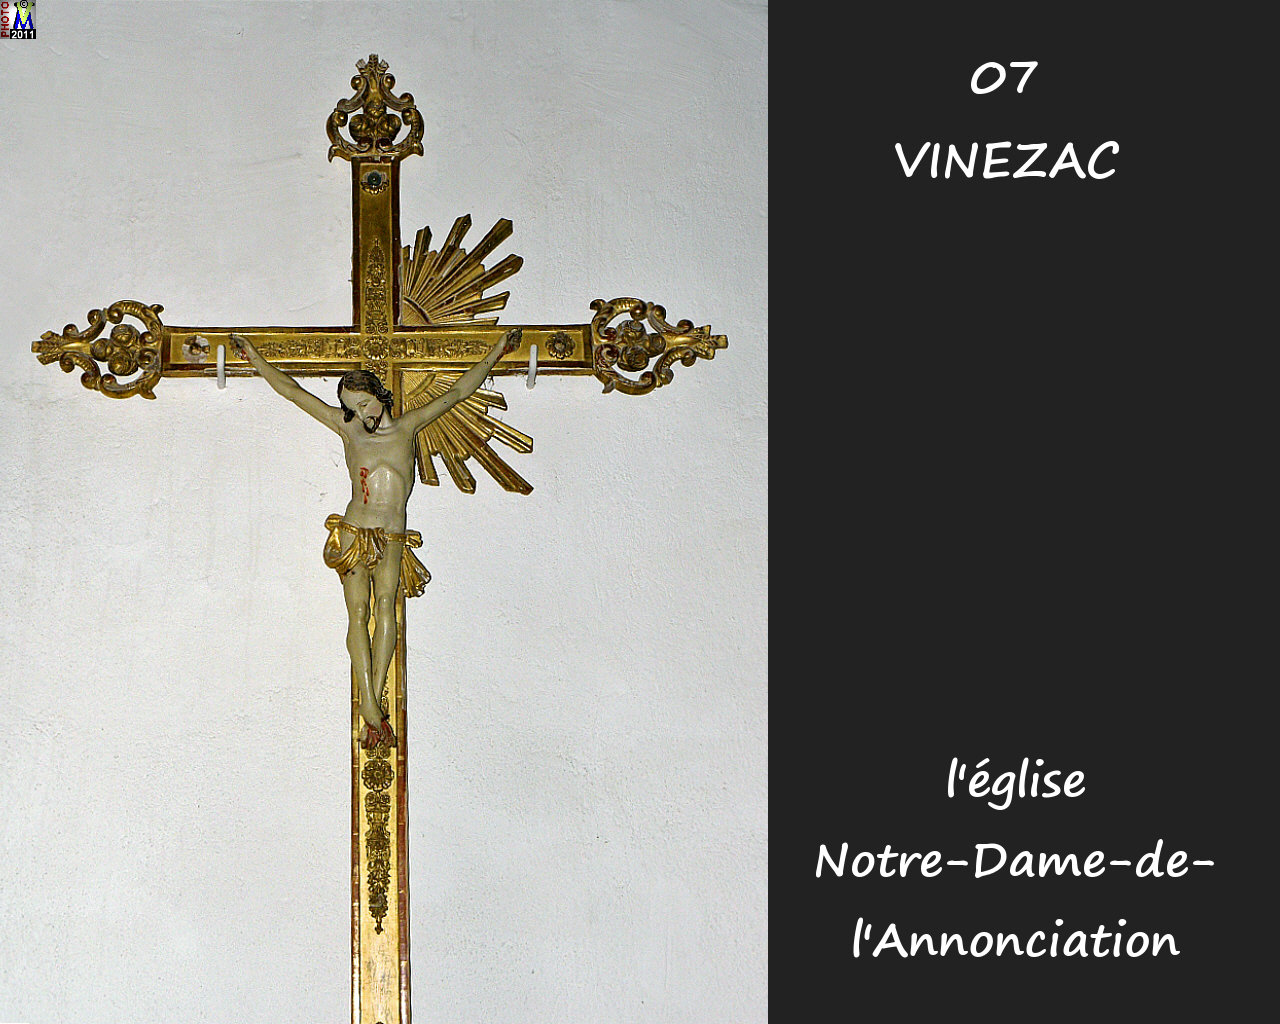 07VINEZAC_eglise_242.jpg